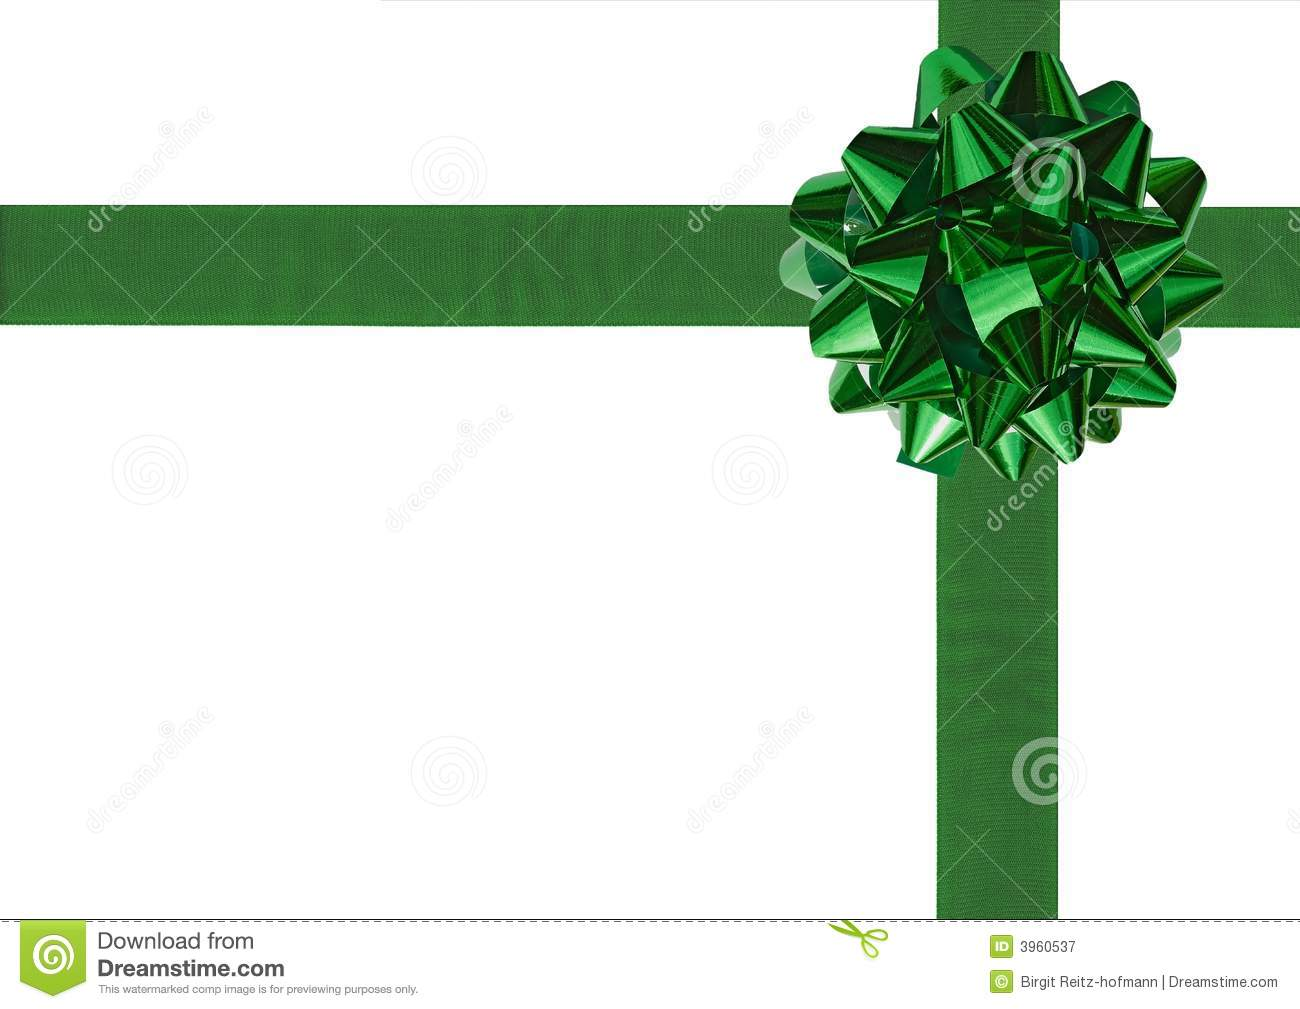 Gift wrapping business plan